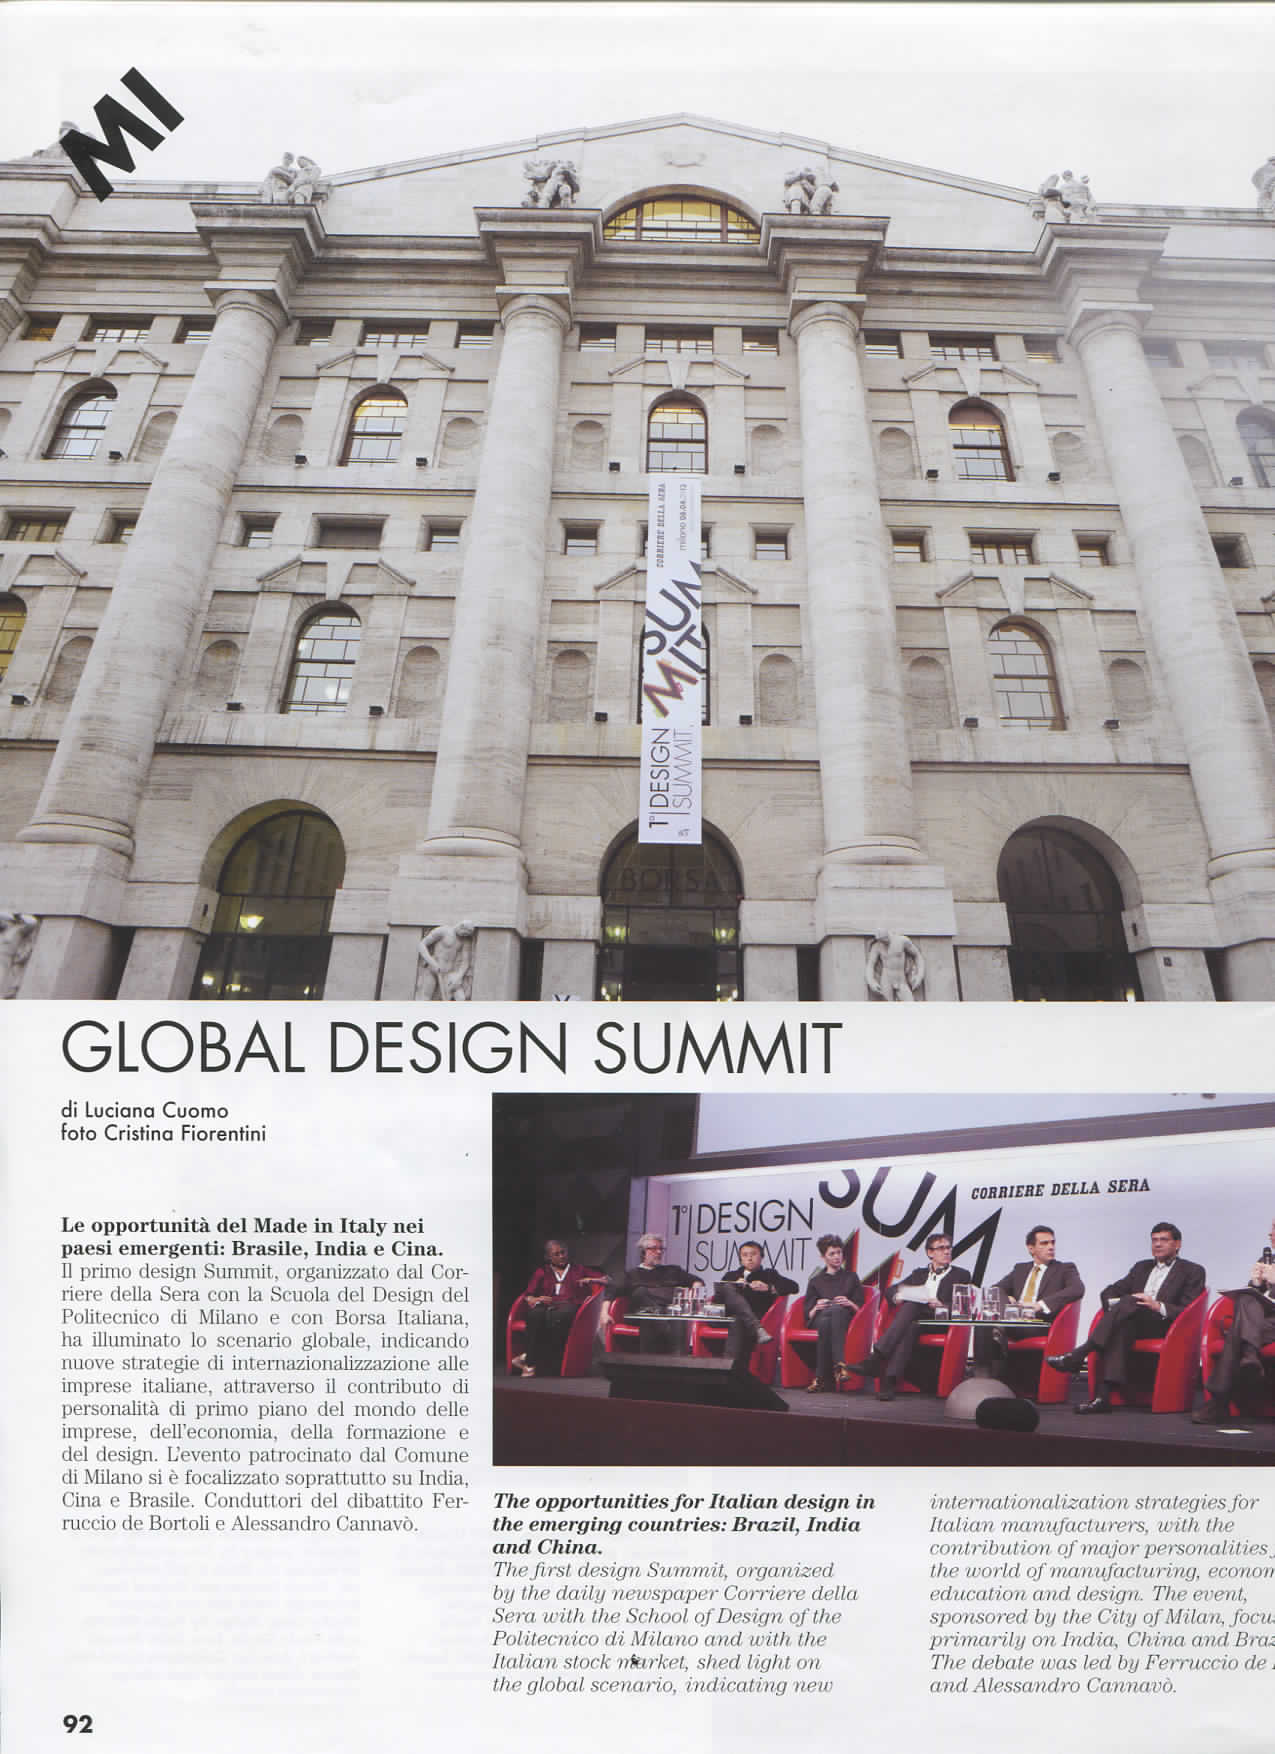 DDN Magazine, Jun/Jul 2013 - 1° DESIGN SUMMIT with Sheila Sriprakash